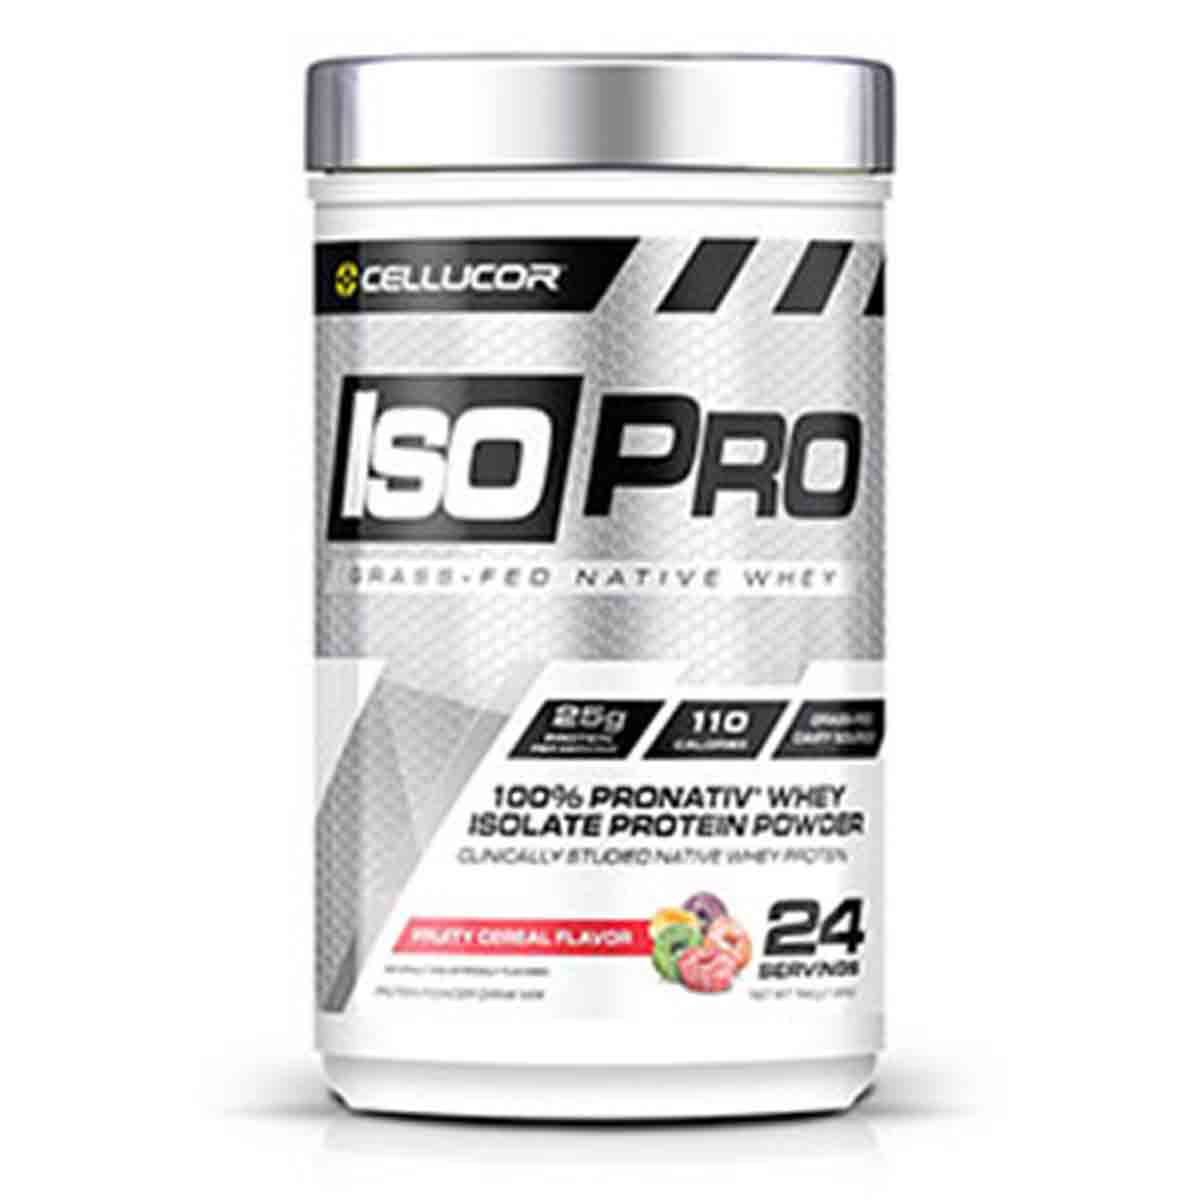 Cellucor IsoPro Grass-Fed Native Whey